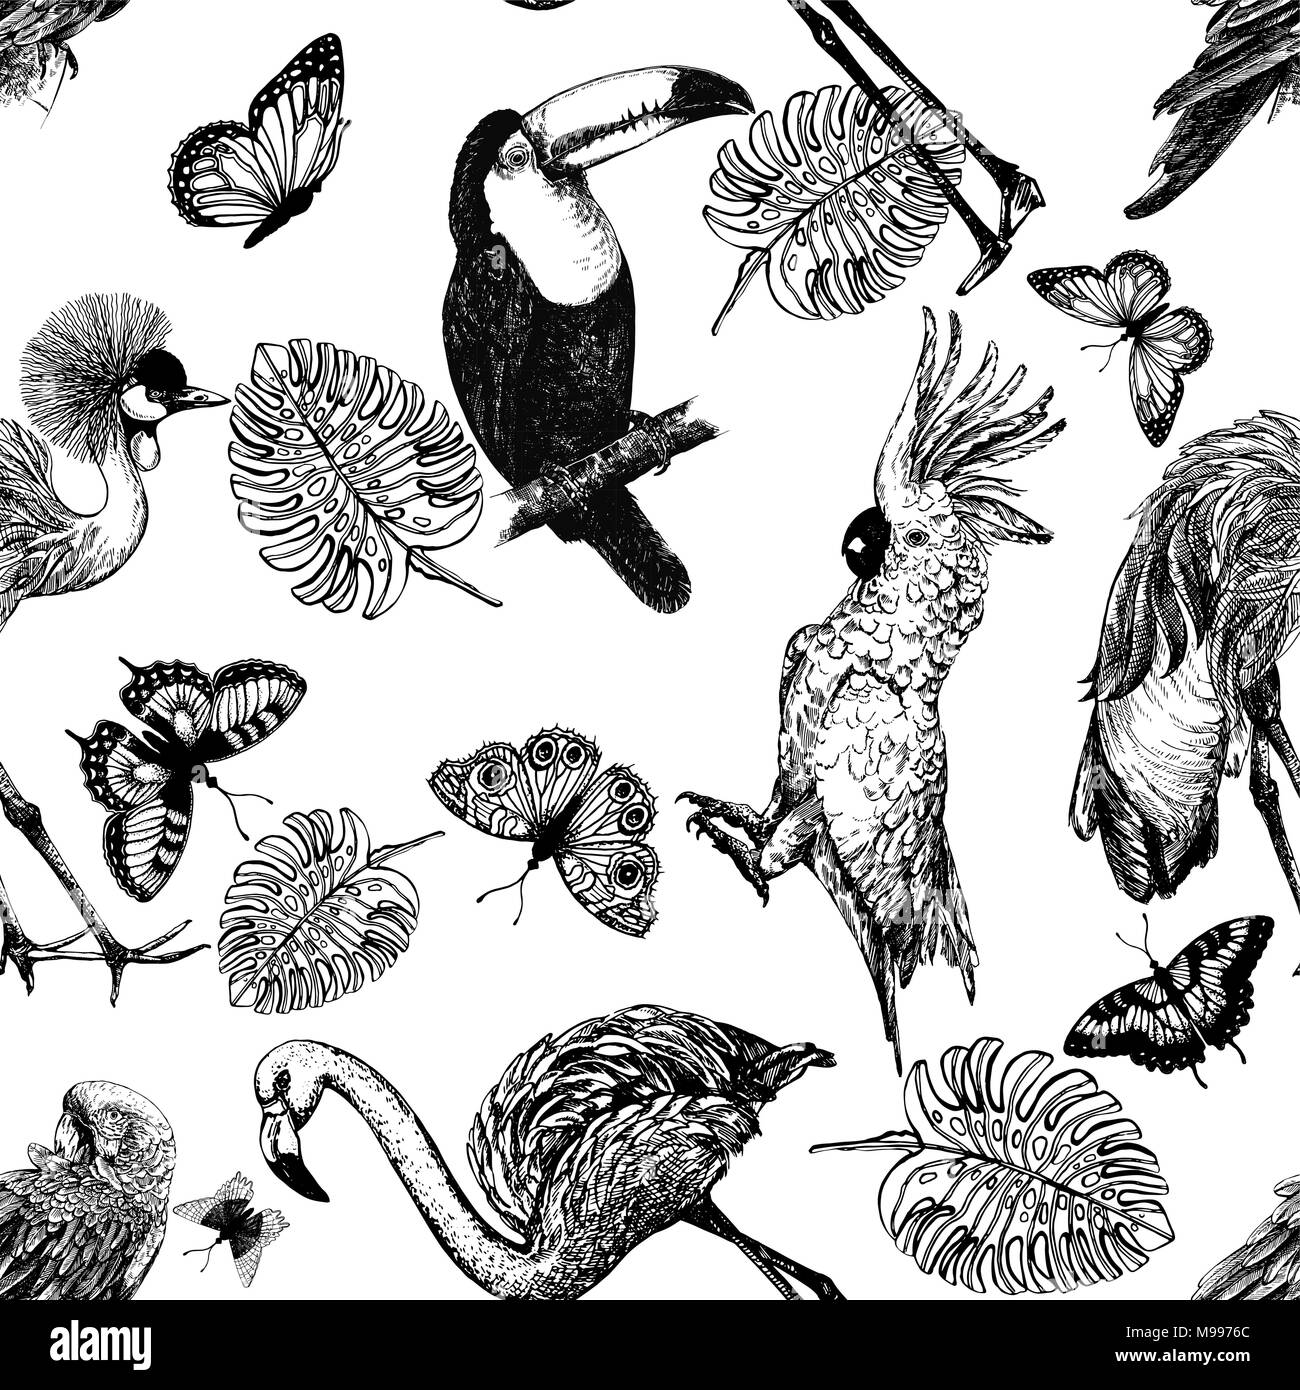 Seamless pattern of hand drawn sketch style exotic birds, plants and butterflies isolated on white background. Vector illustration. Stock Vector